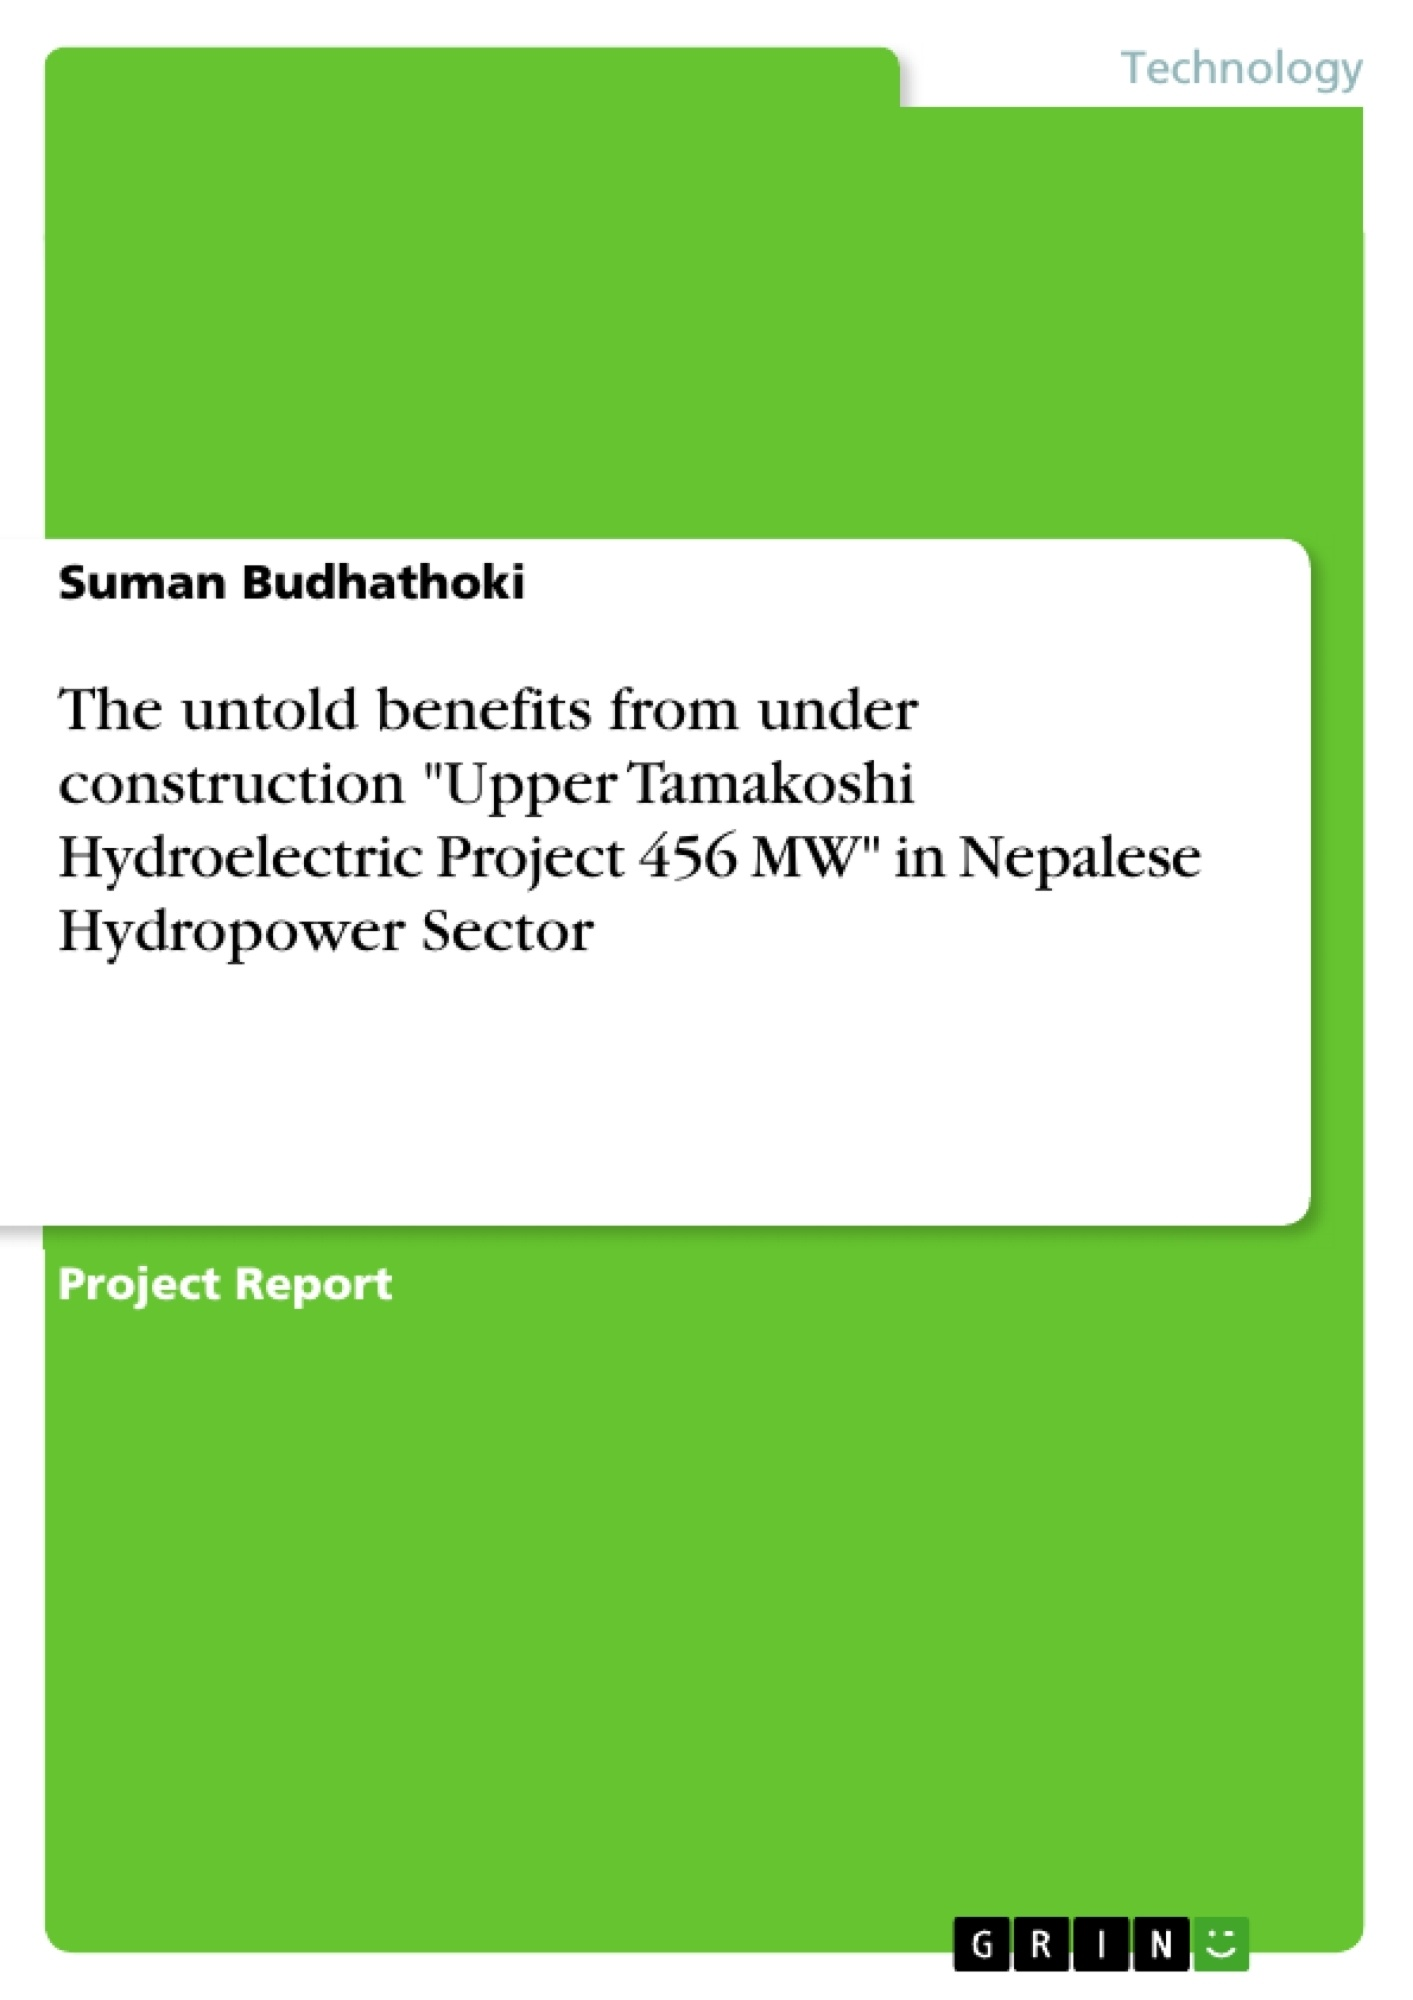 """Title: The untold benefits from under construction """"Upper Tamakoshi Hydroelectric Project 456 MW"""" in Nepalese Hydropower Sector"""